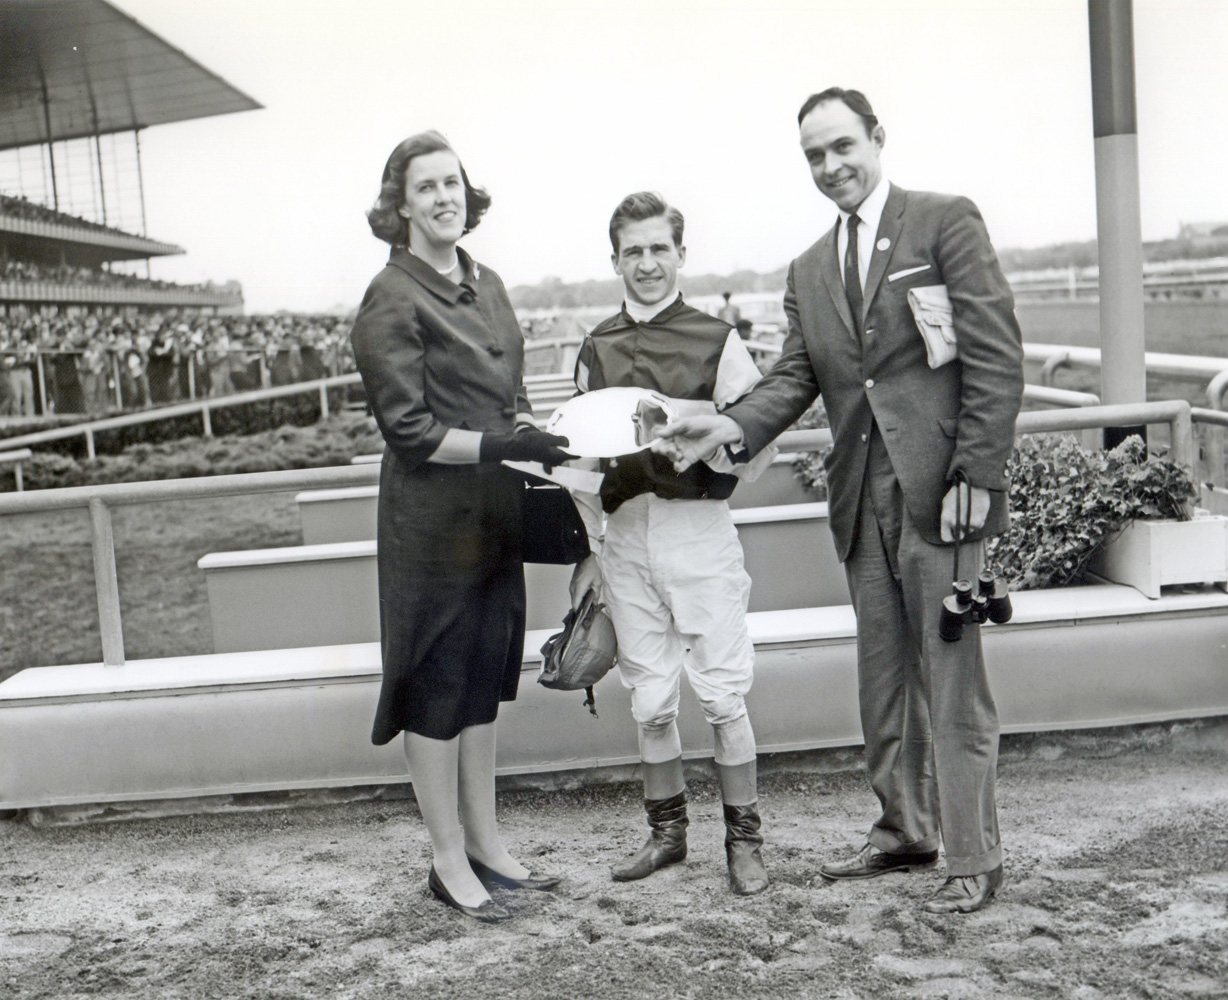 Jockey Bobby Ussery and trainer T. J. Kelly at the trophy presentation for the 1961 Juvenile at Aqueduct, won by Sunrise County (Keeneland Library Morgan Collection/Museum Collection)